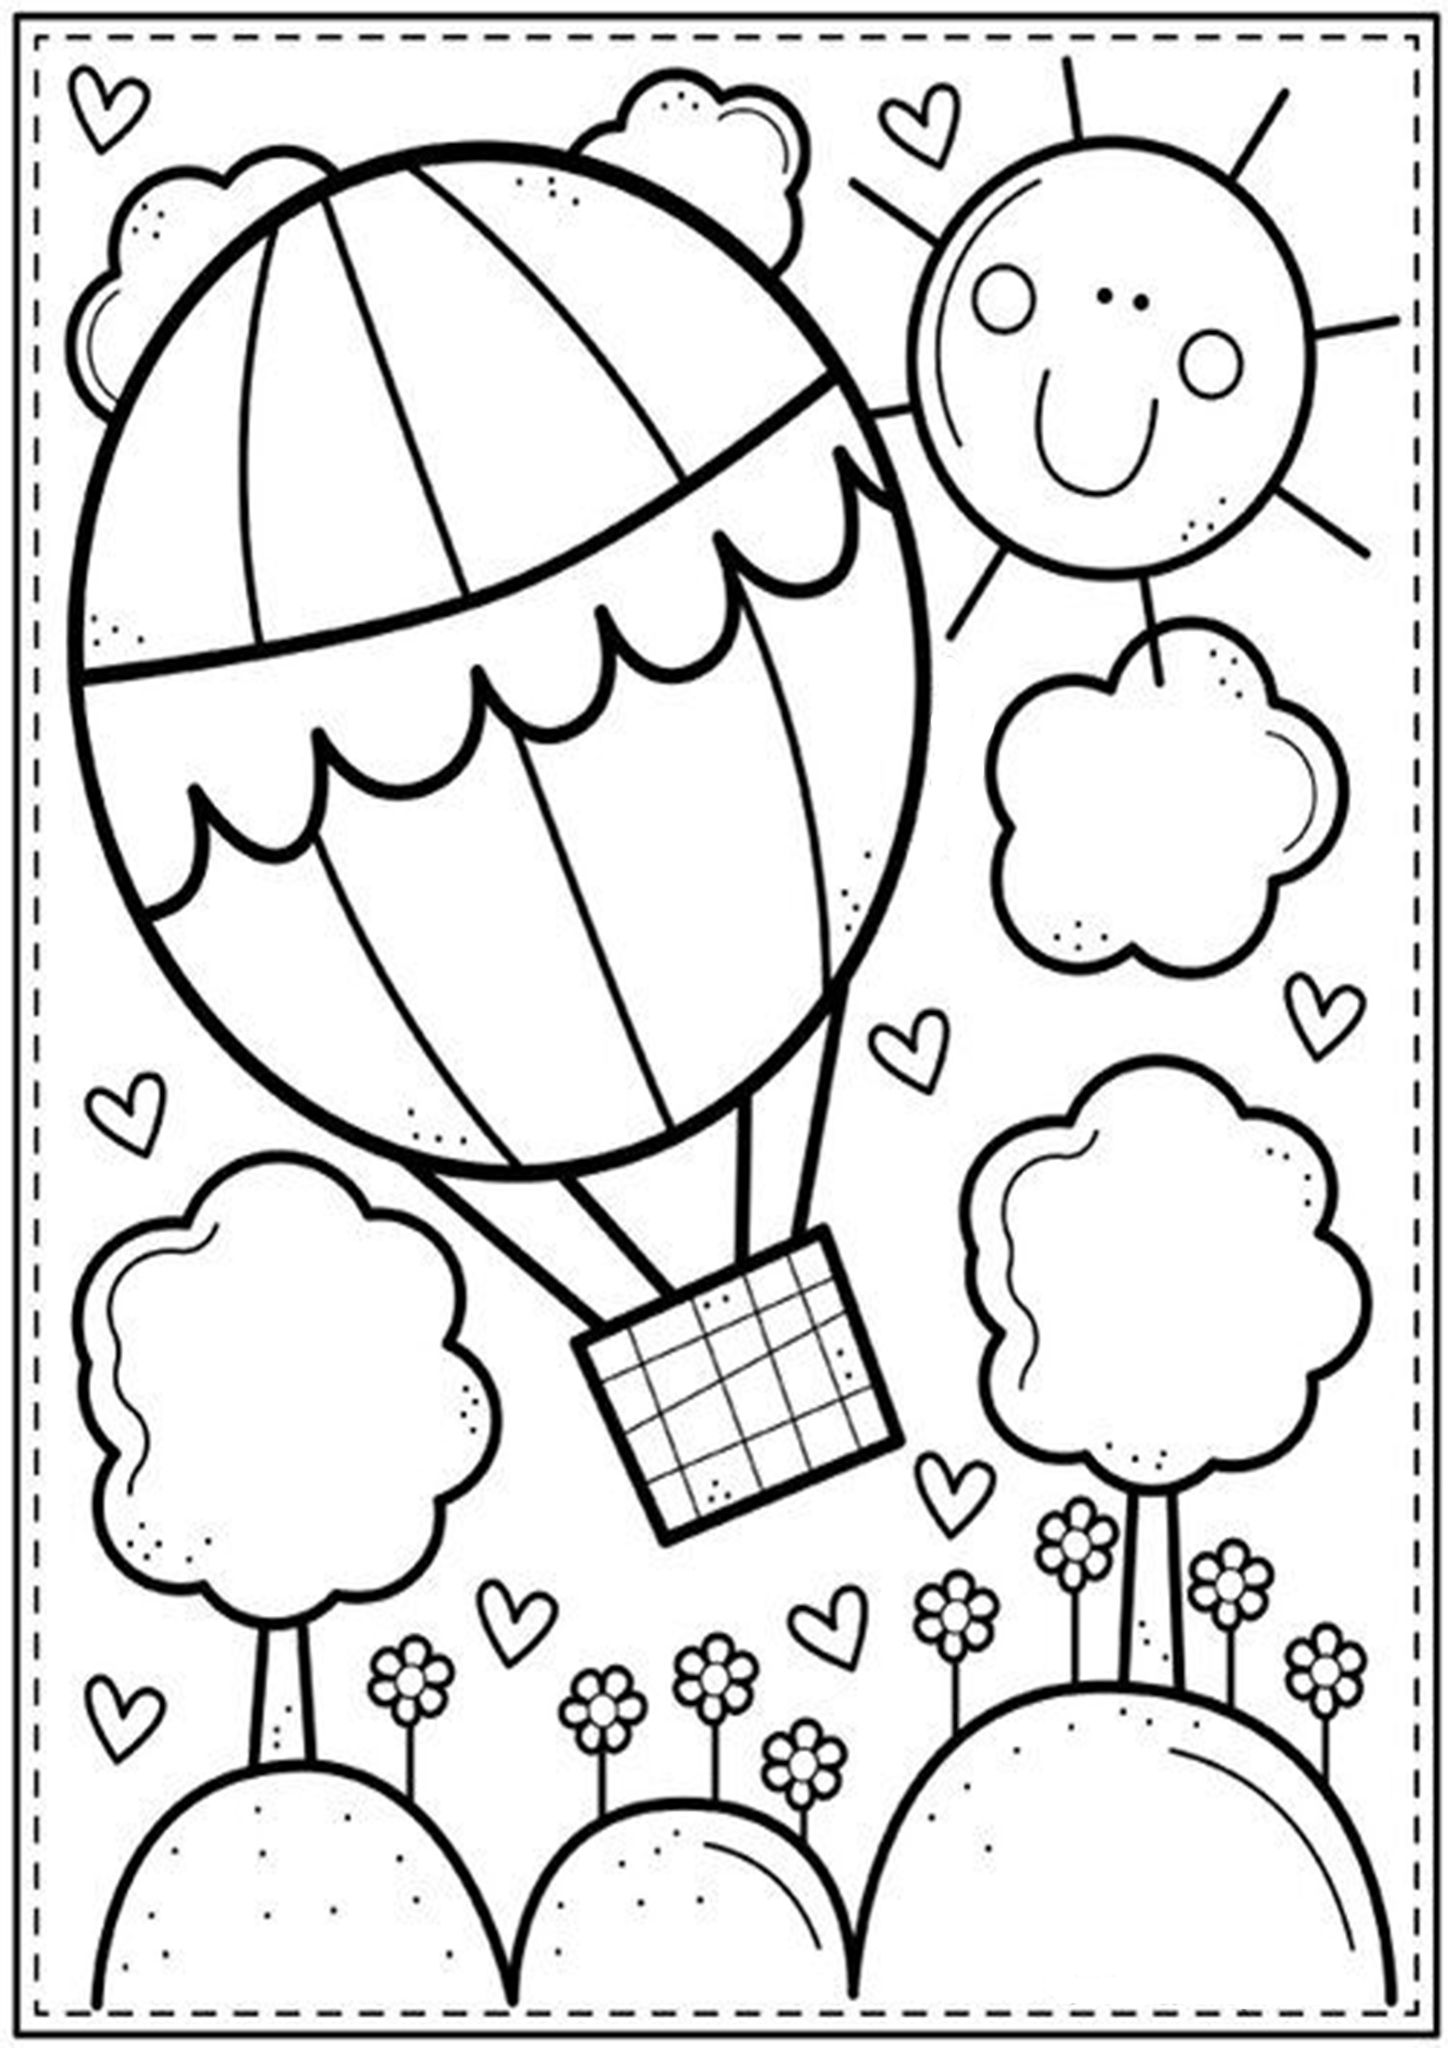 Free Easy To Print Cute Coloring Pages Cute Coloring Pages Coloring Pages Spring Coloring Pages [ 2048 x 1448 Pixel ]